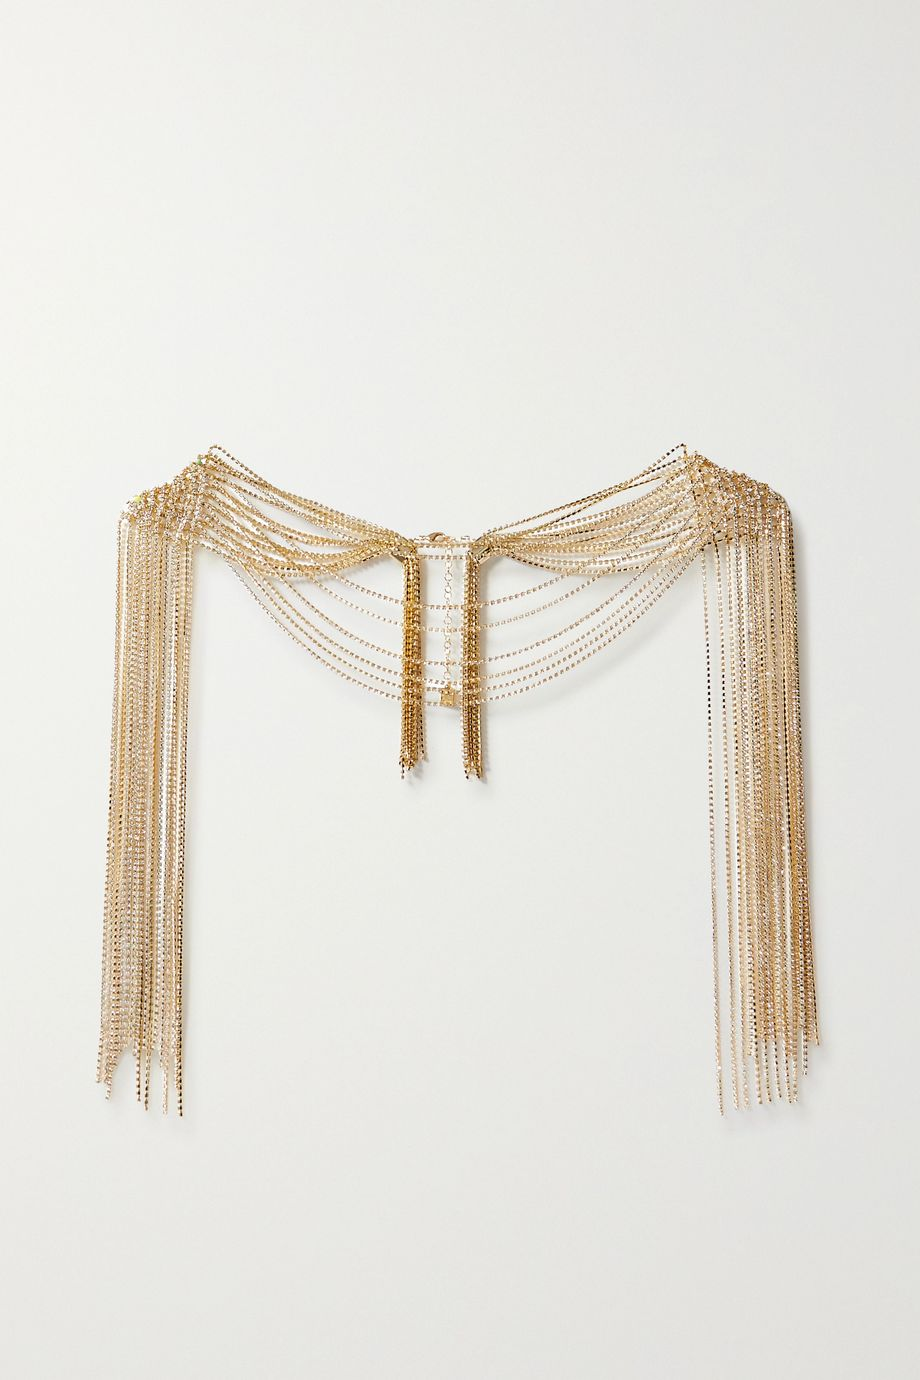 Rosantica Diva fringed gold-tone crystal body chain